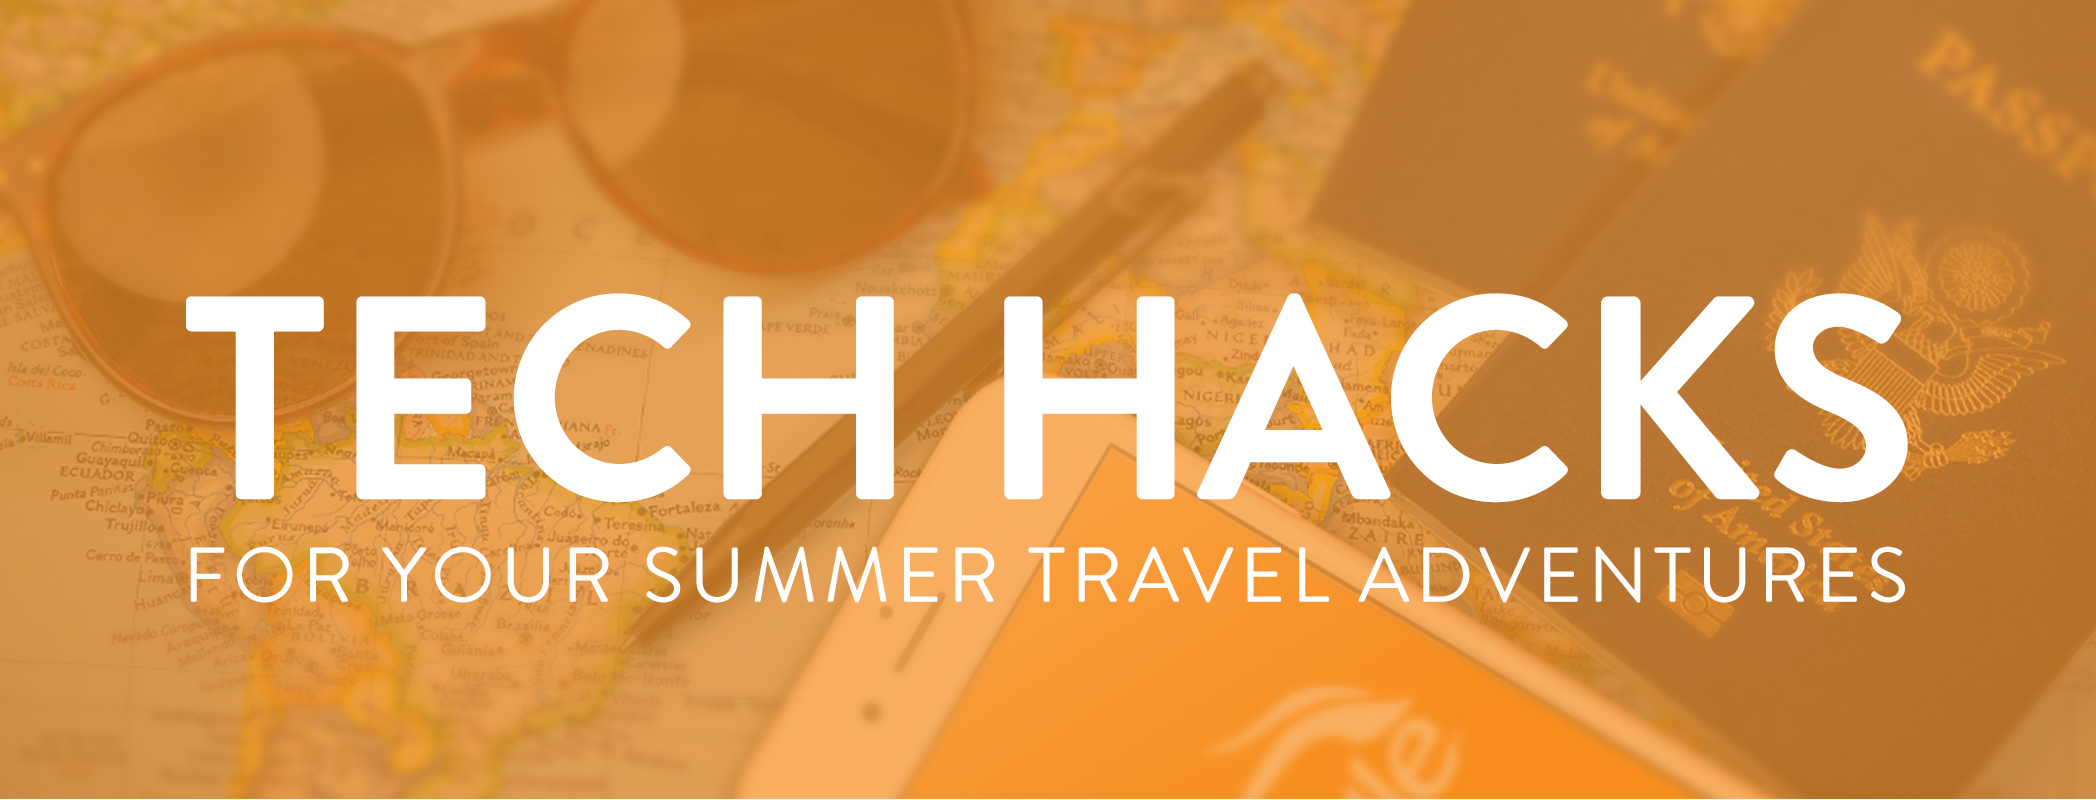 10 Tech Hacks for Your Summer Travel